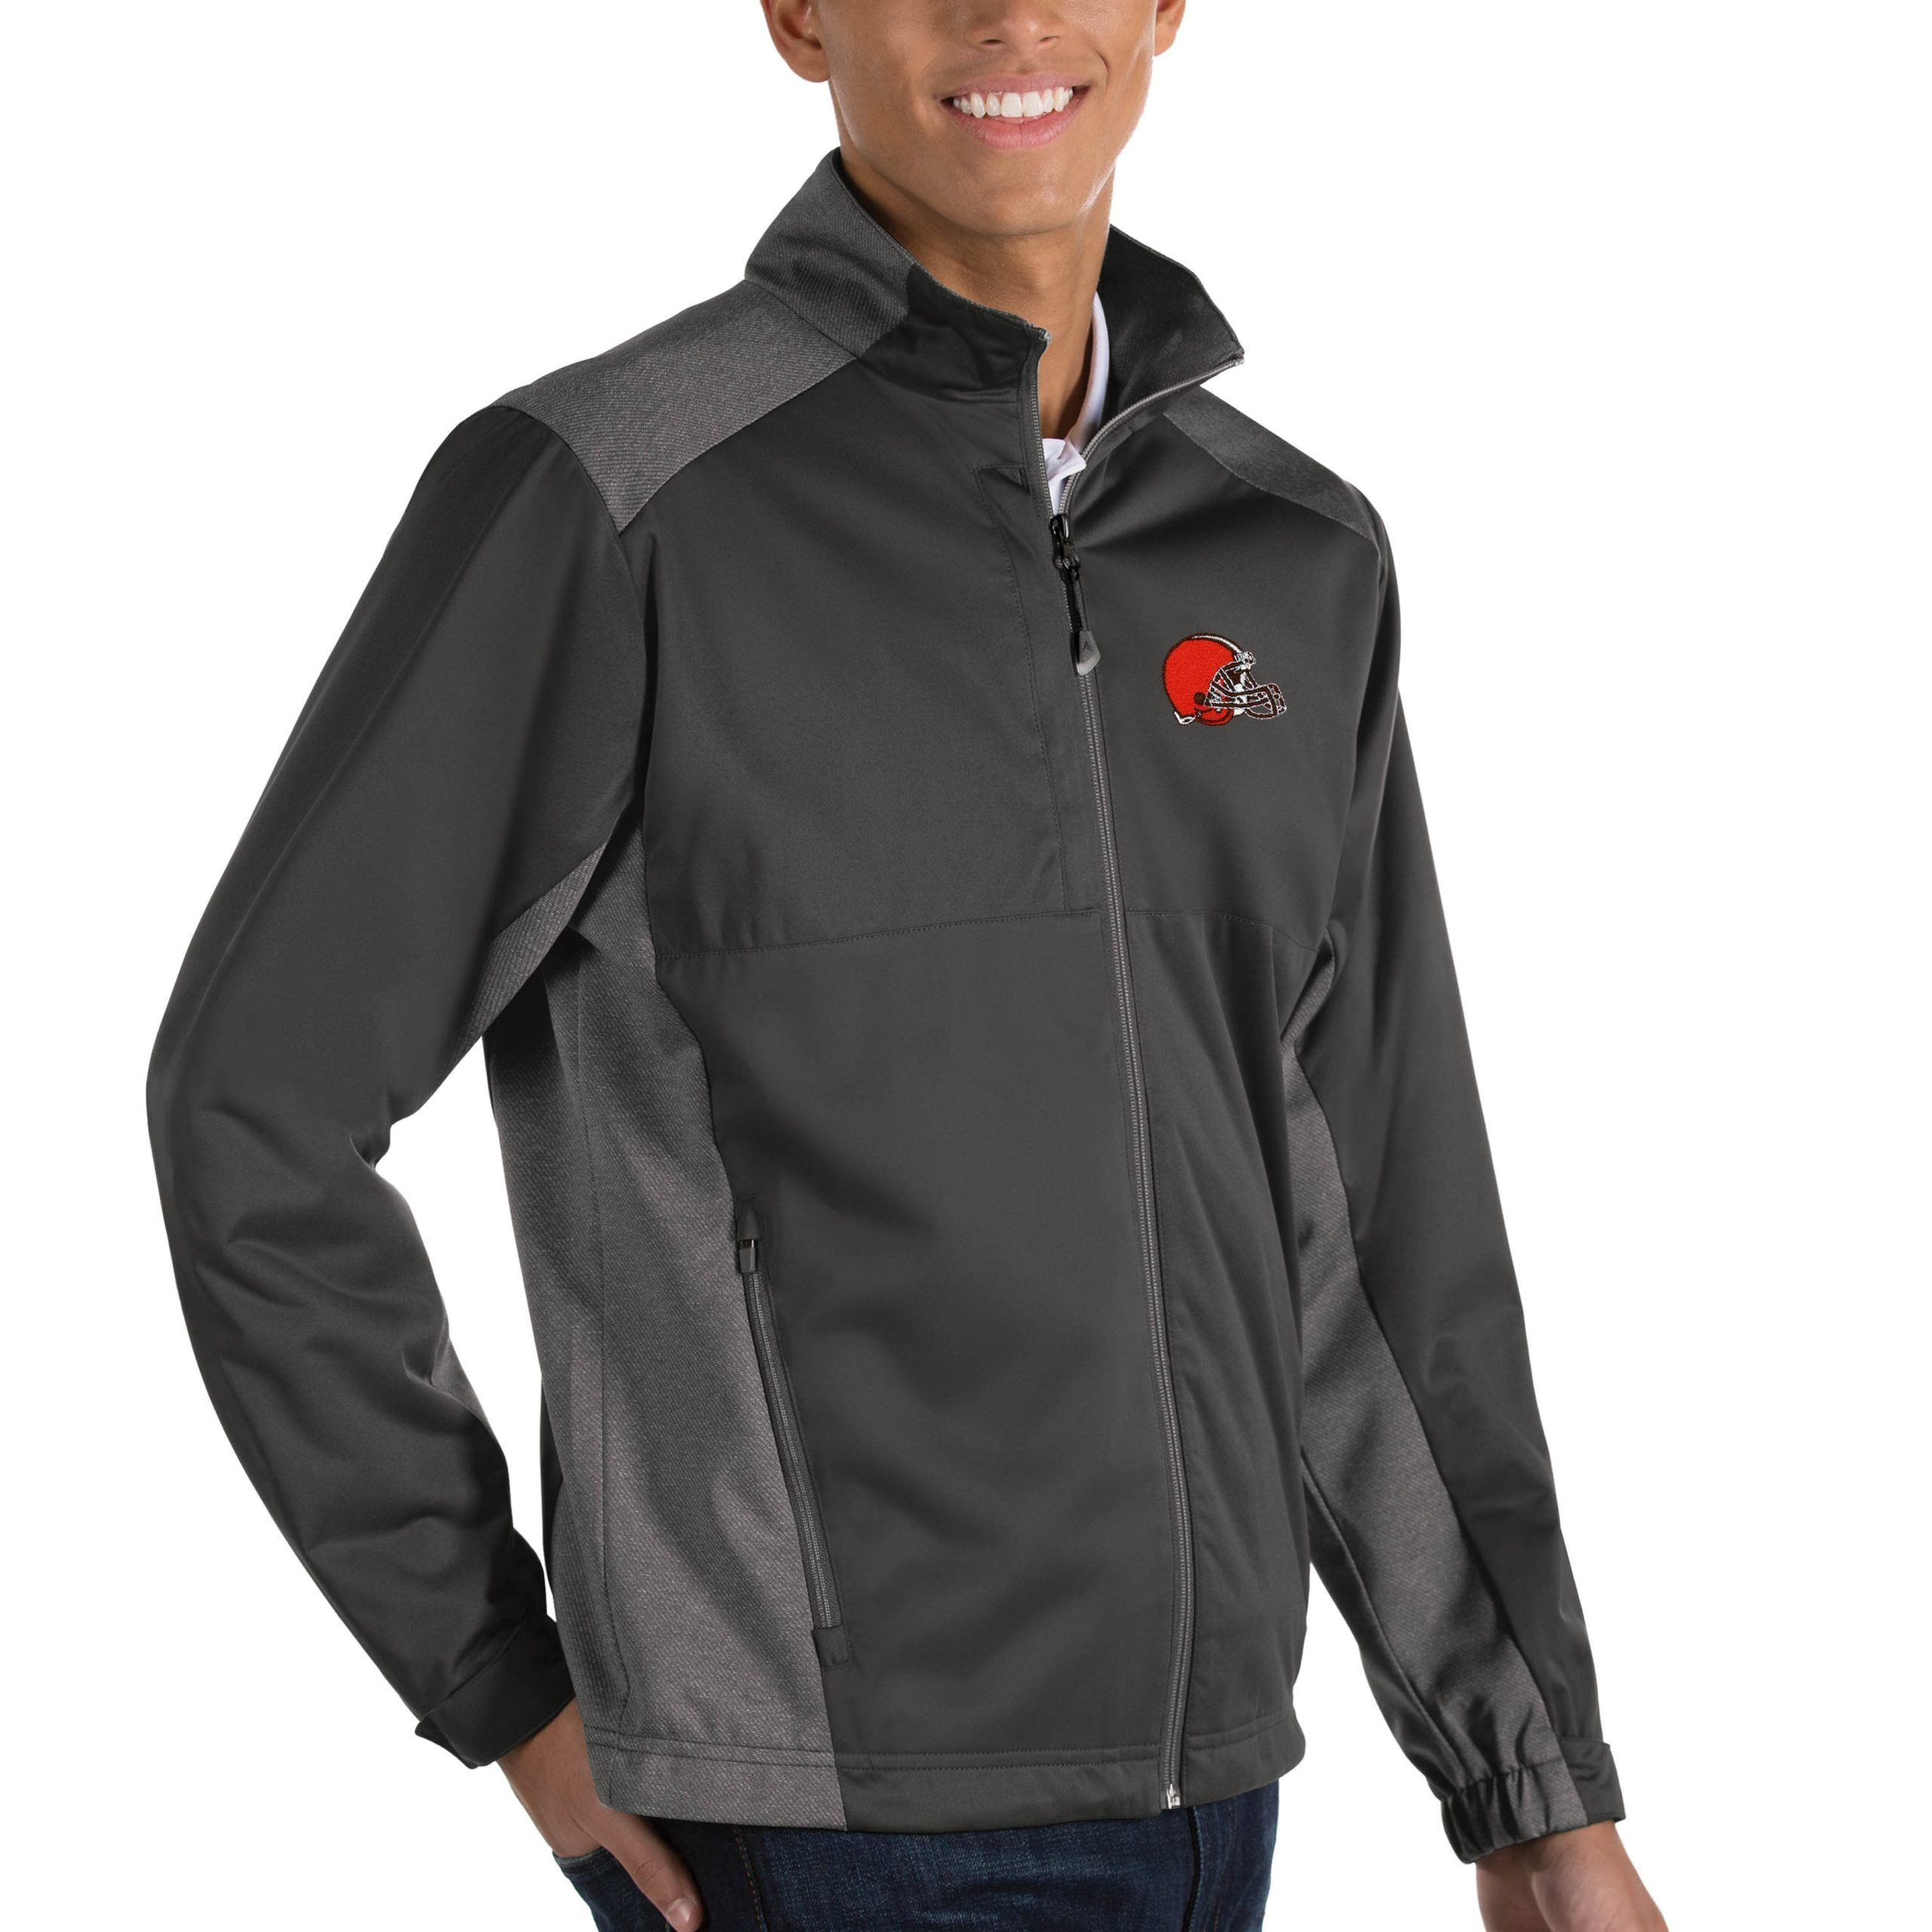 Cleveland Browns Antigua Revolve Big & Tall Full-Zip Jacket - Heather Charcoal